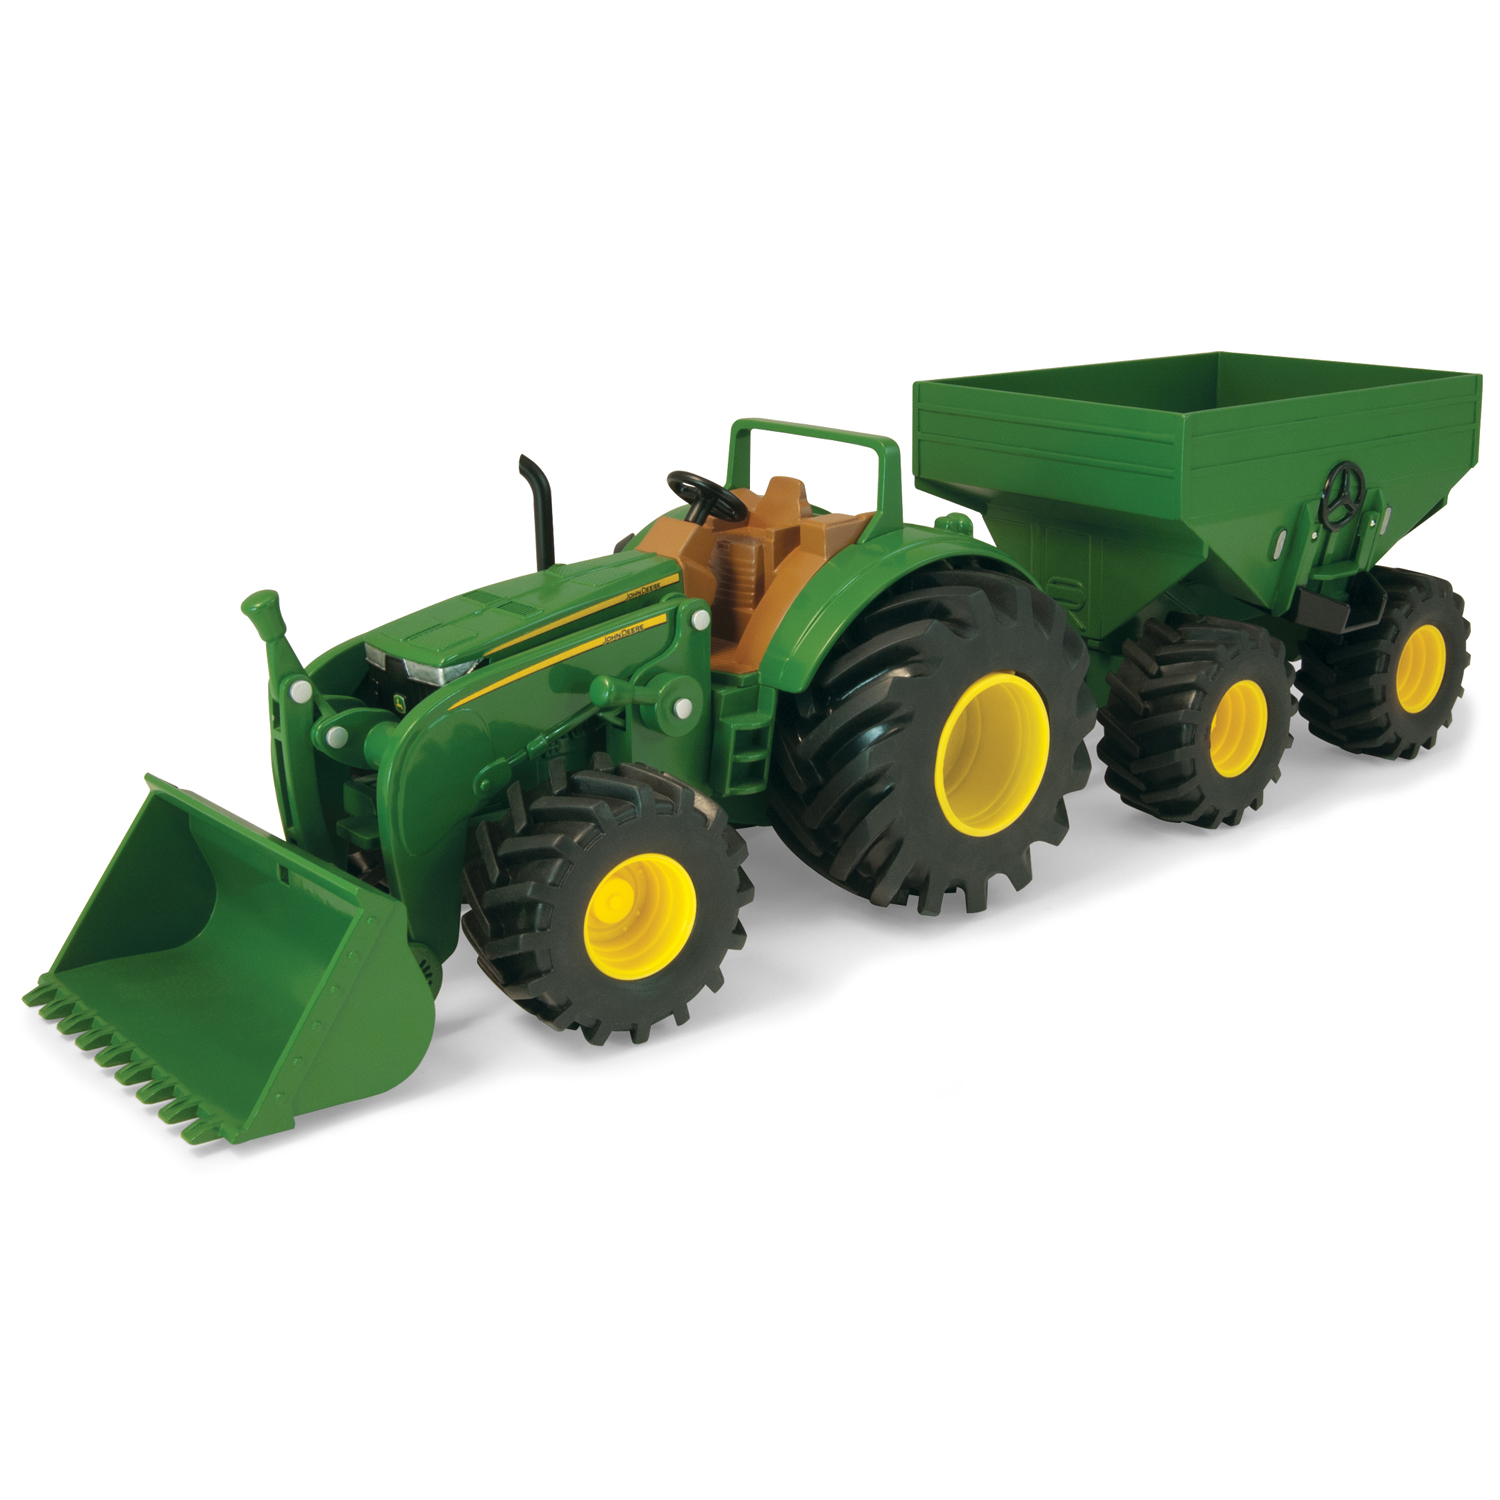 John Deere Toys - Tractor with Gravity Wagon & Loader at ...